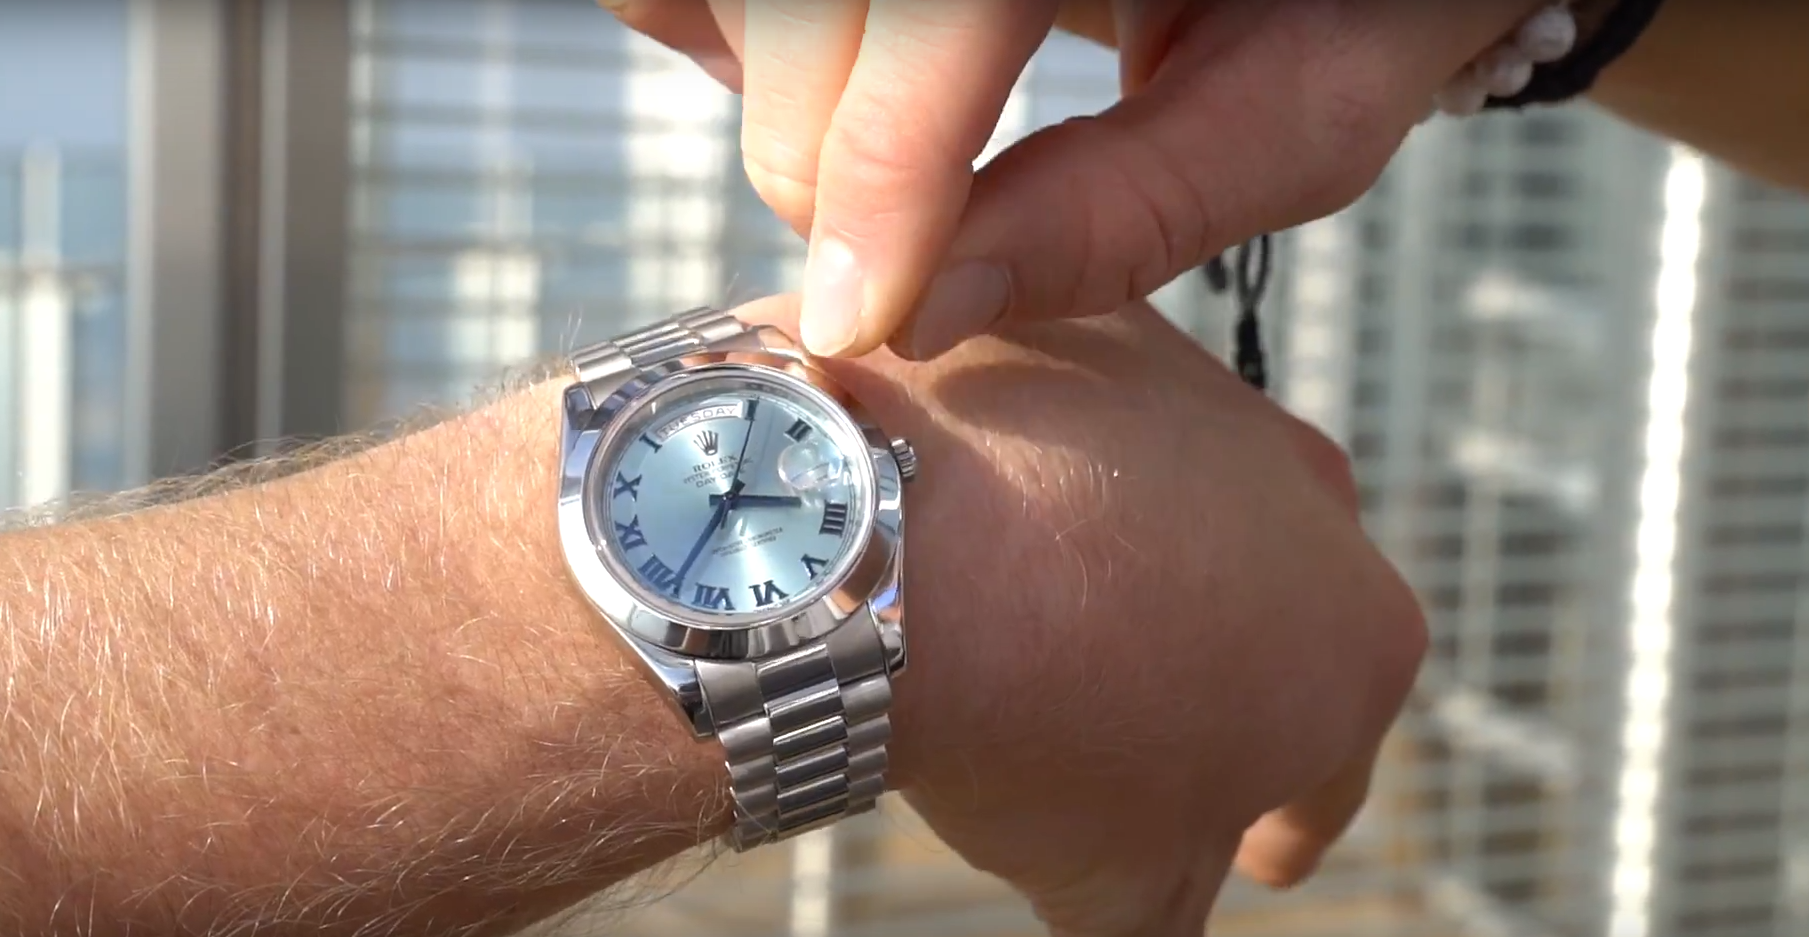 YouTube Millionaire Logan Paul Just Bought His First Rolex